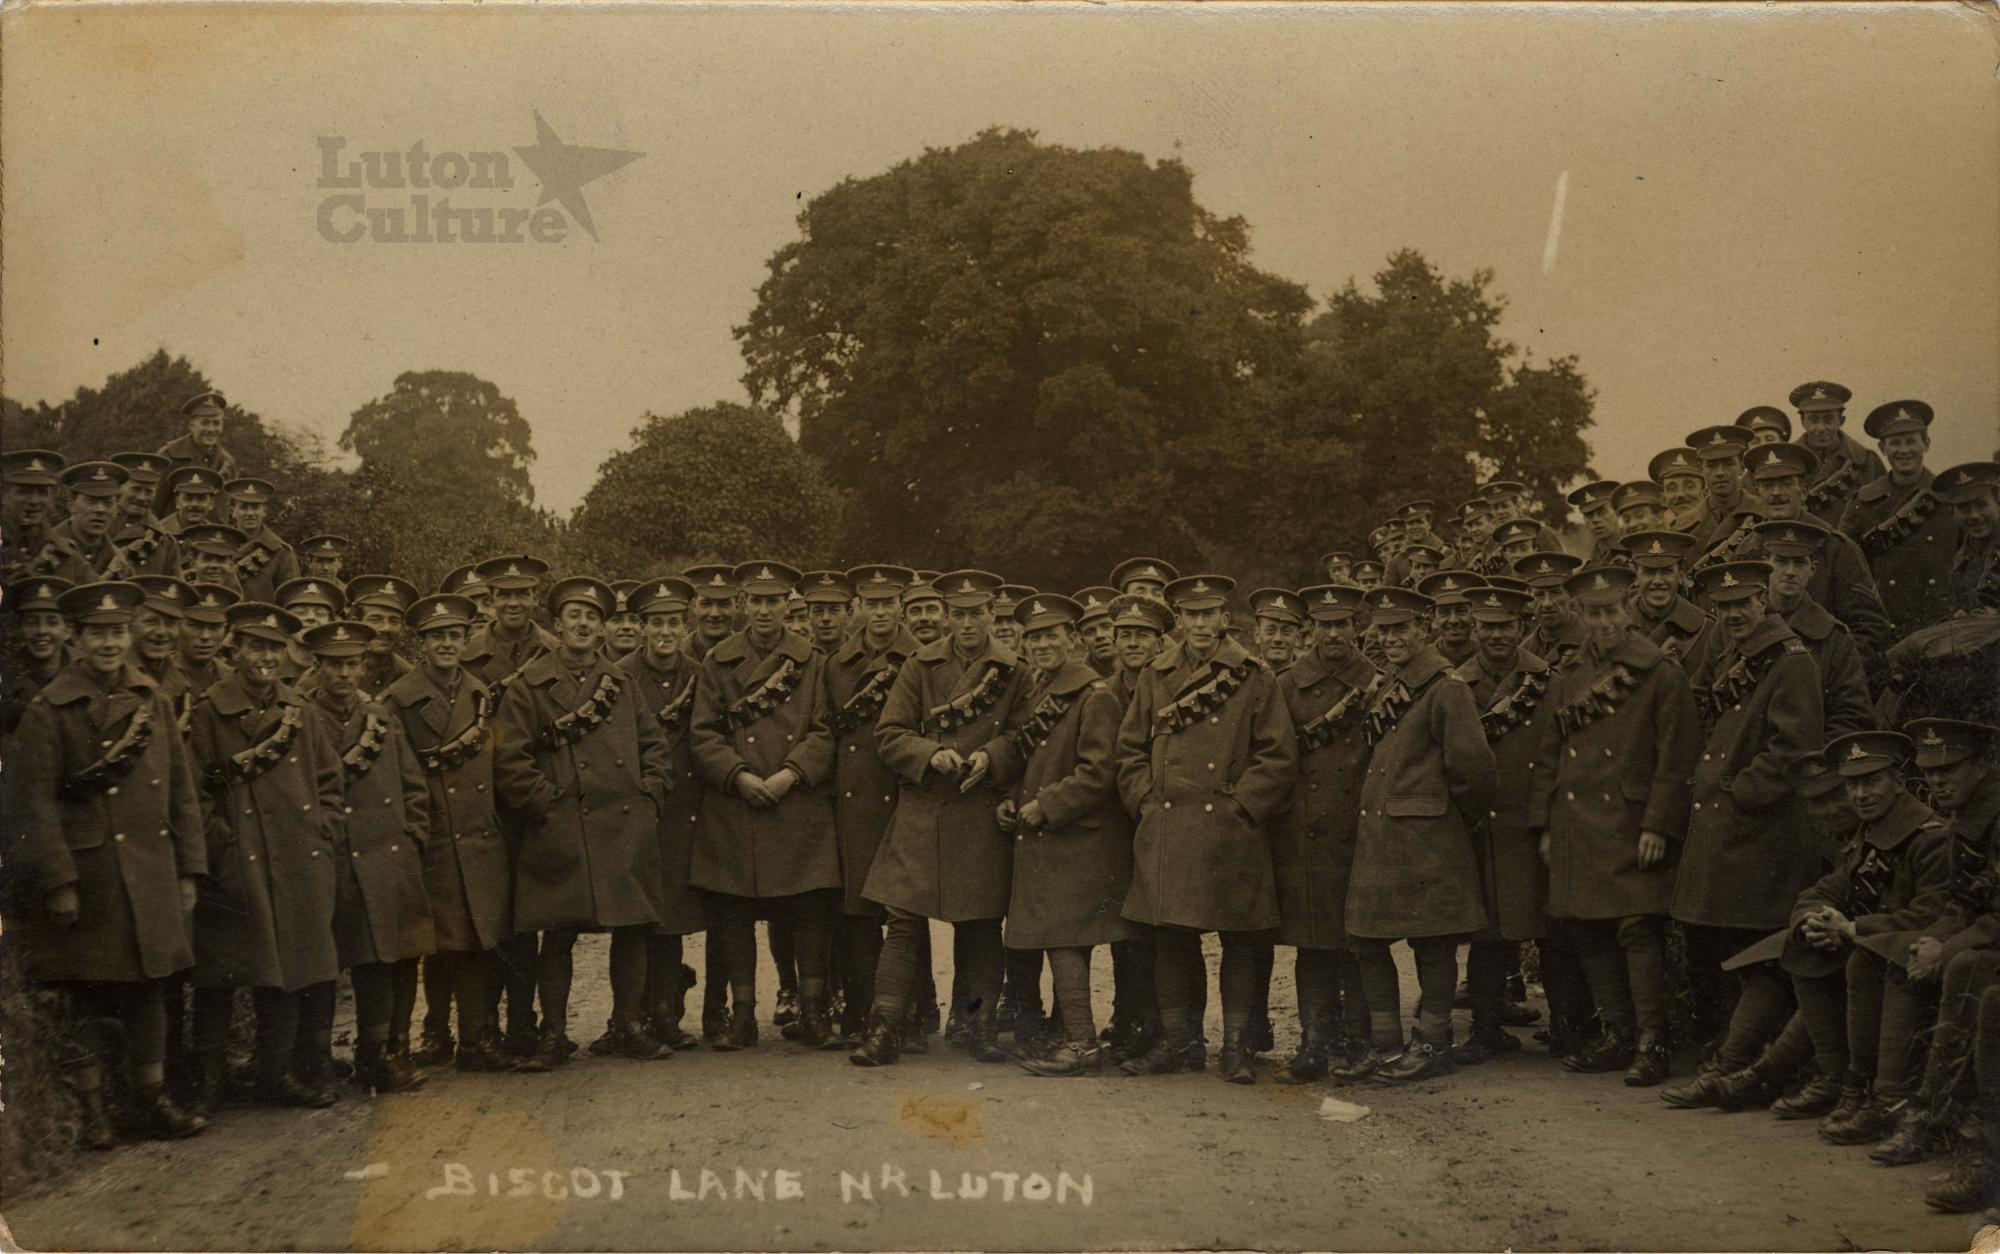 Soldiers on Biscot Lane Luton